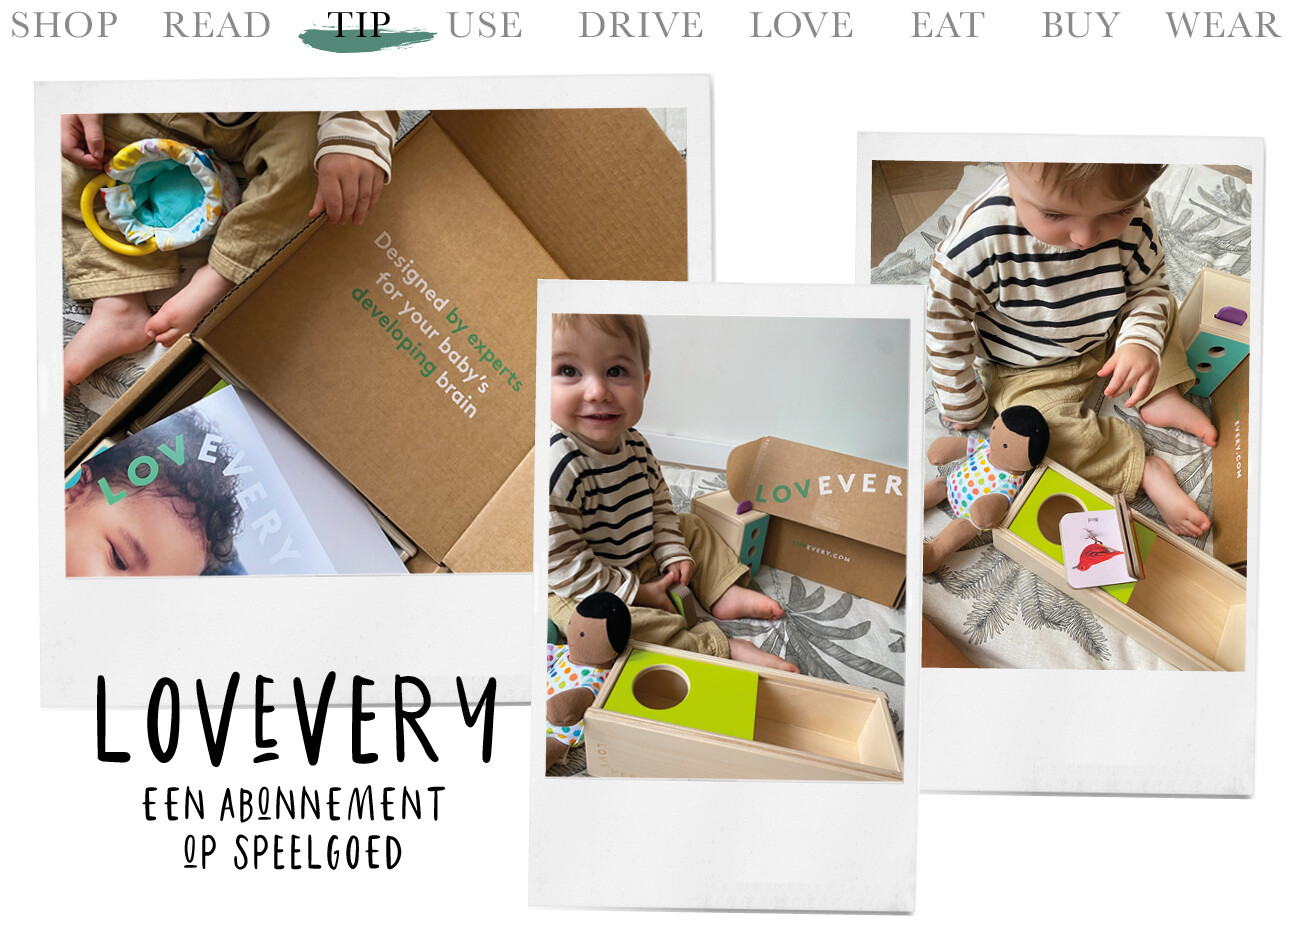 Today we tip Lovevery